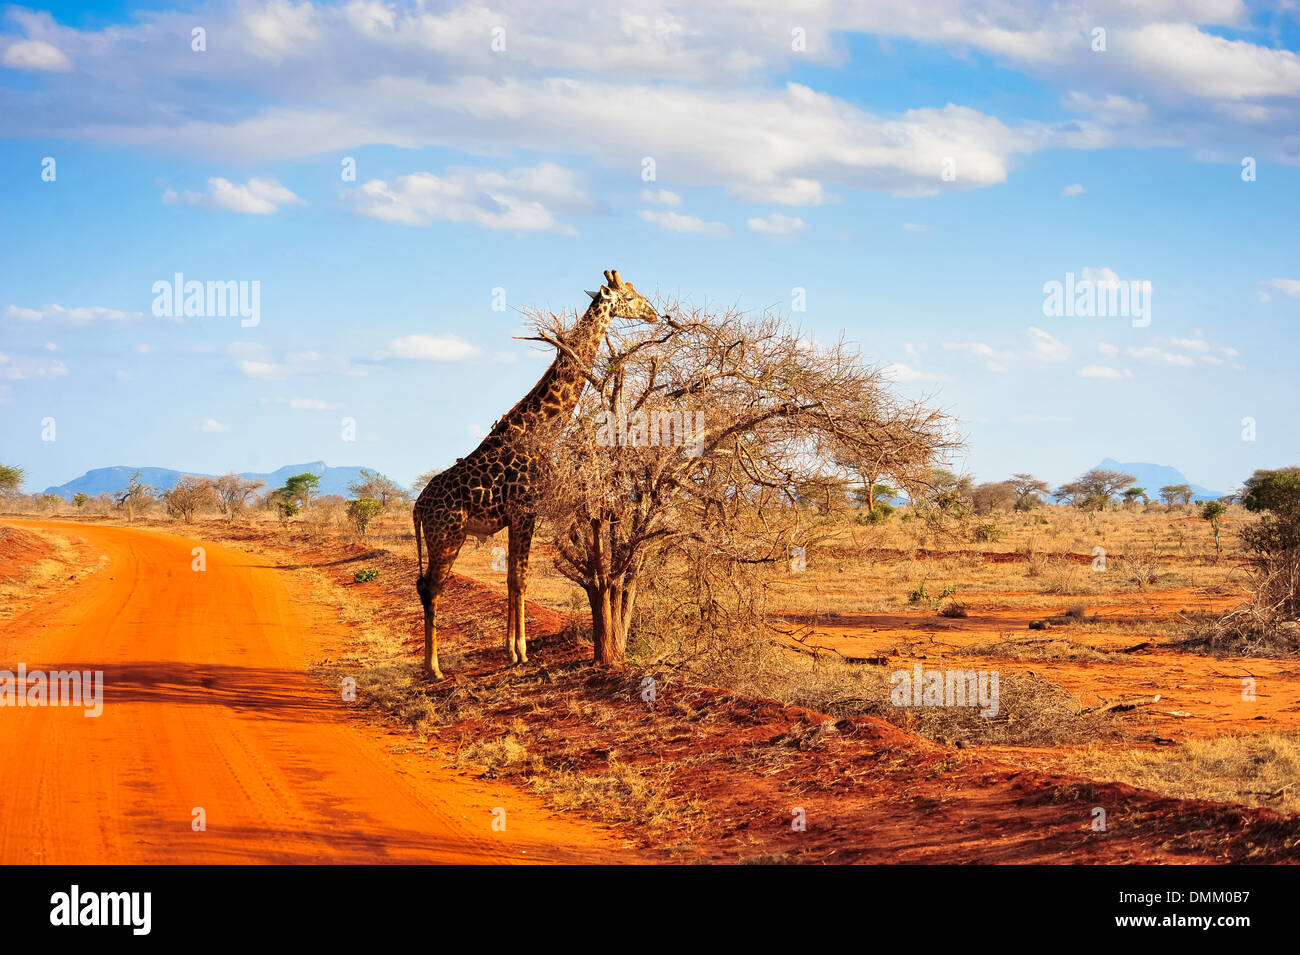 africa beautiful nature a feast for the eyes - Stock Image